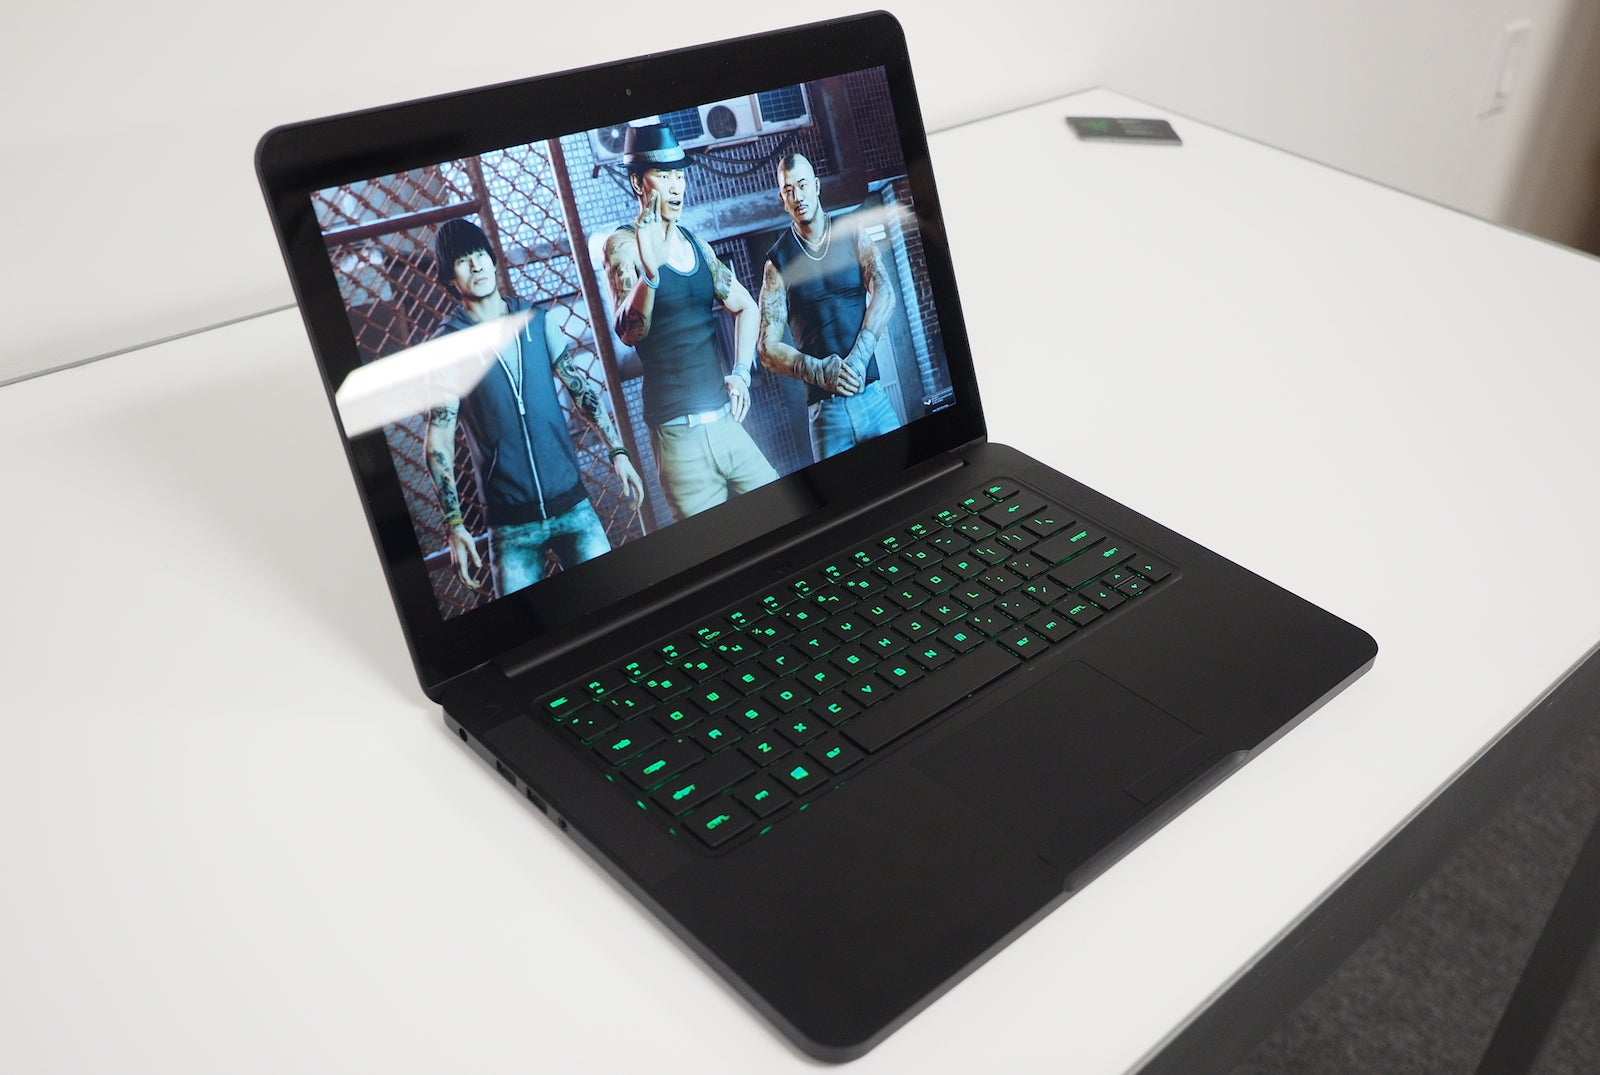 Razer's Righteous New Blade Might Be the Best Windows Laptop Yet